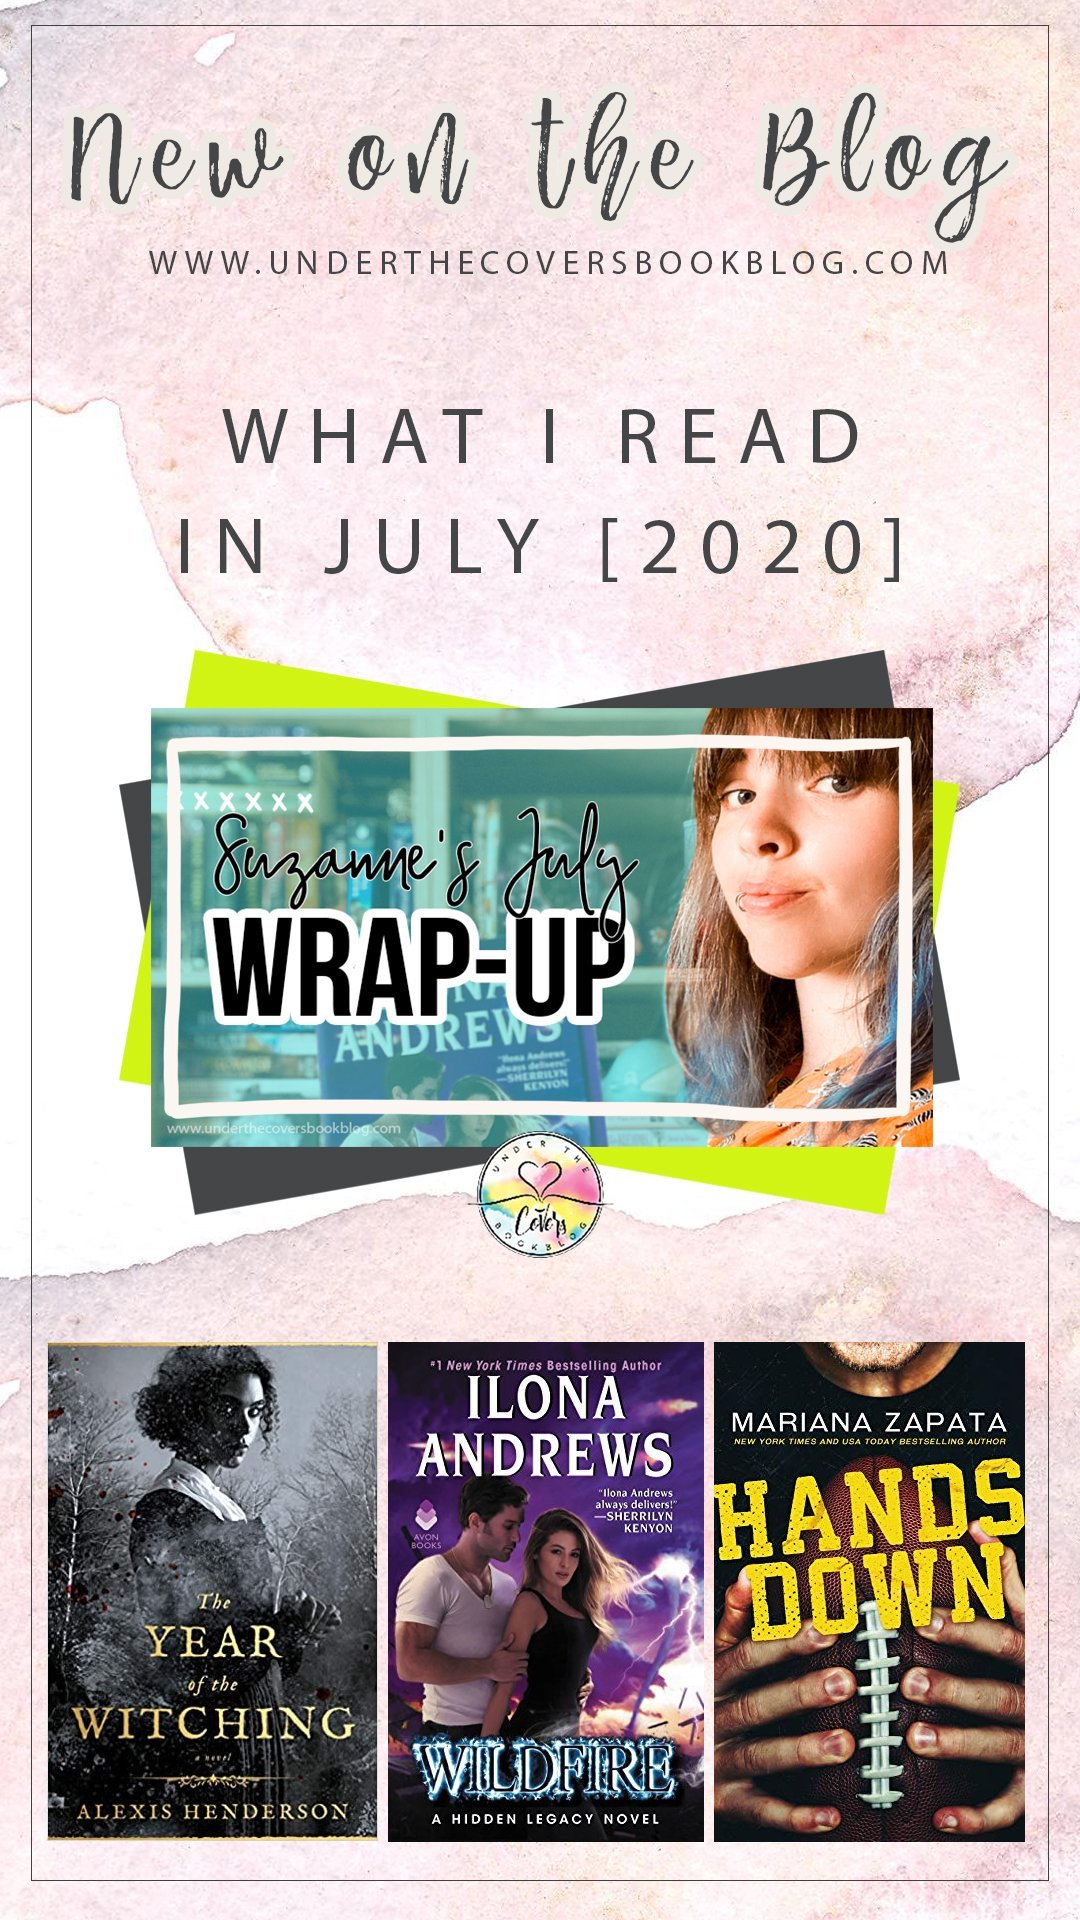 July 2020 Reading Wrap-up: Suzanne